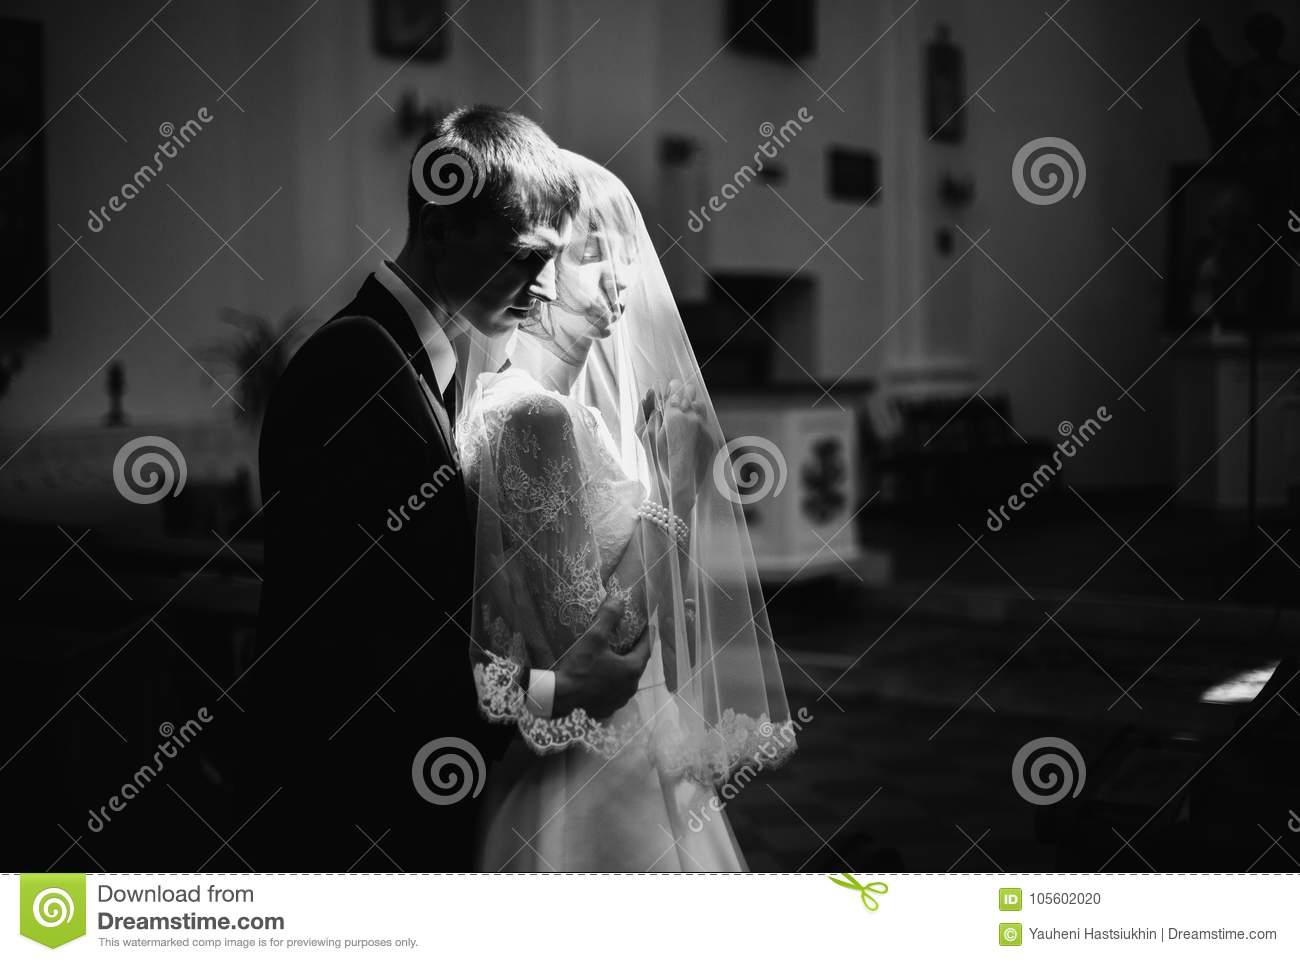 Artistic black and white photography. Wedding photography